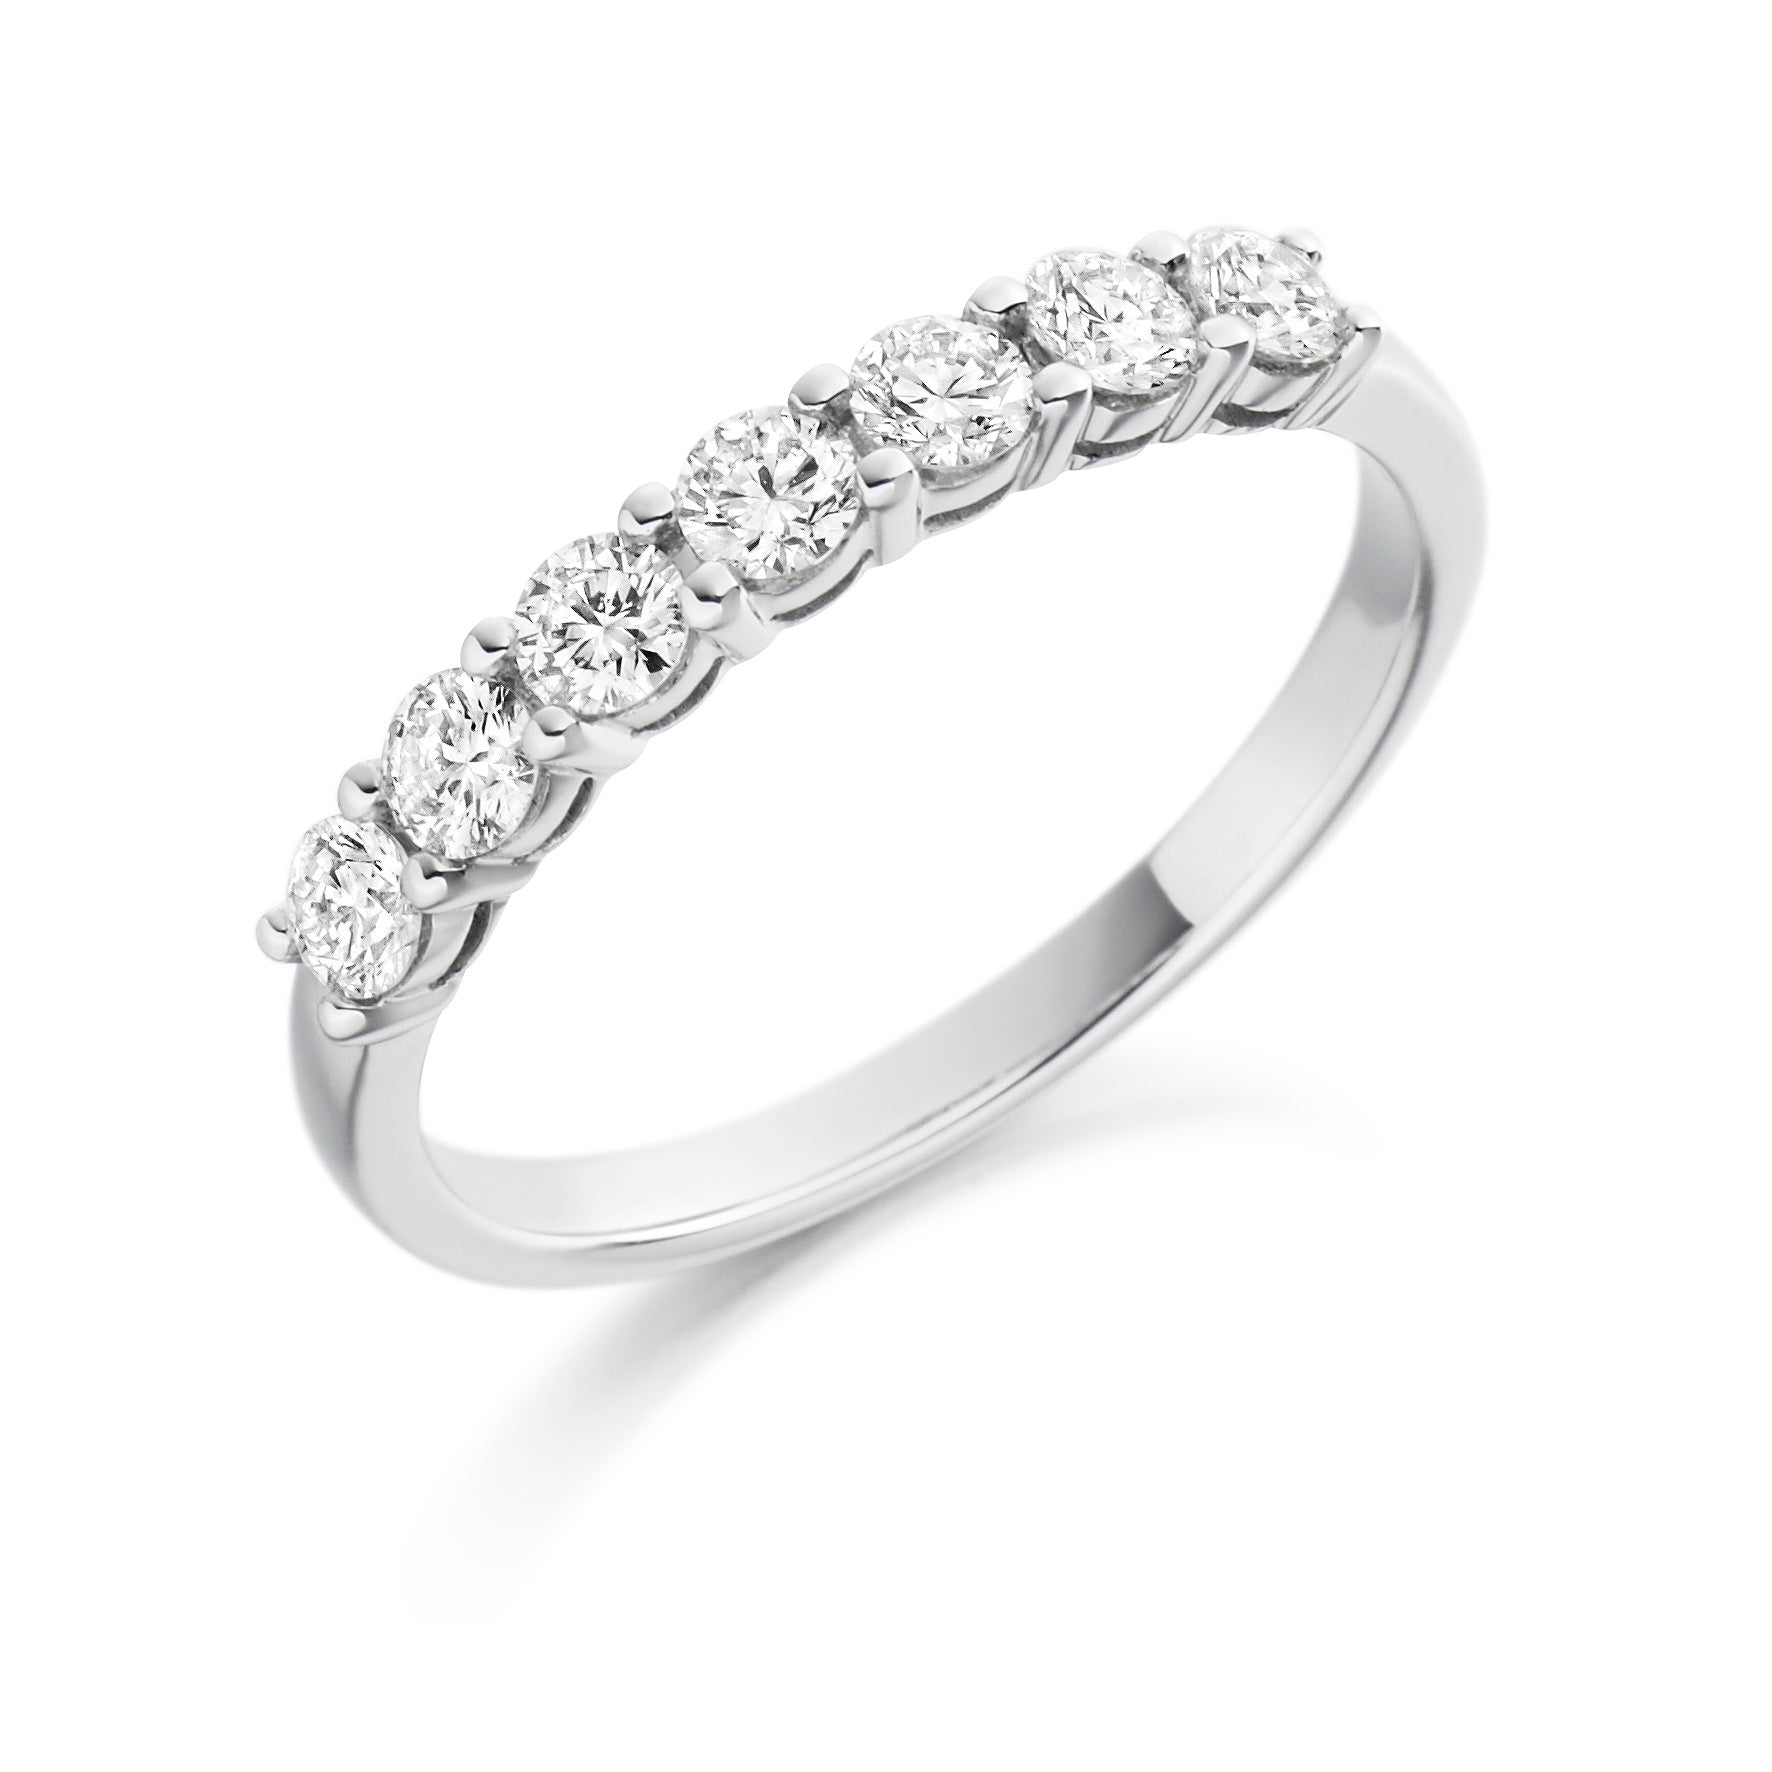 0.5ct Round Brilliant Cut Diamond Wedding Ring - (Home Try-On)